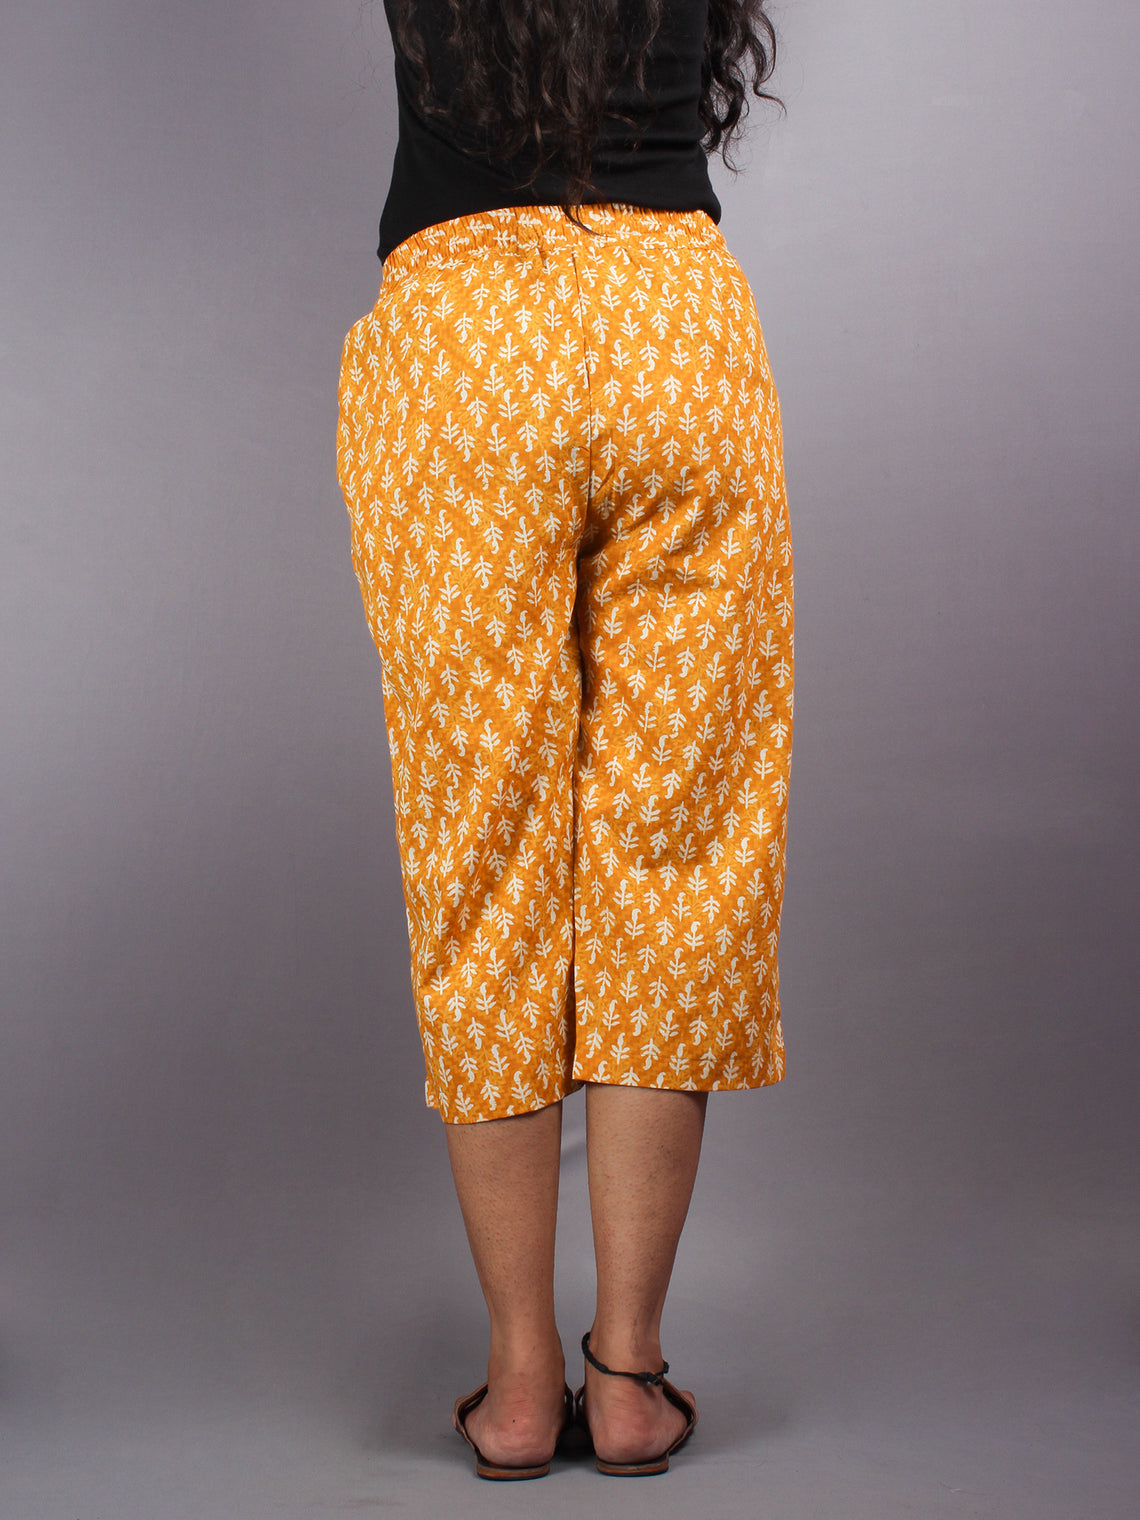 Yellow Hand Block Printed Elasticated Waist Capri - C0267013